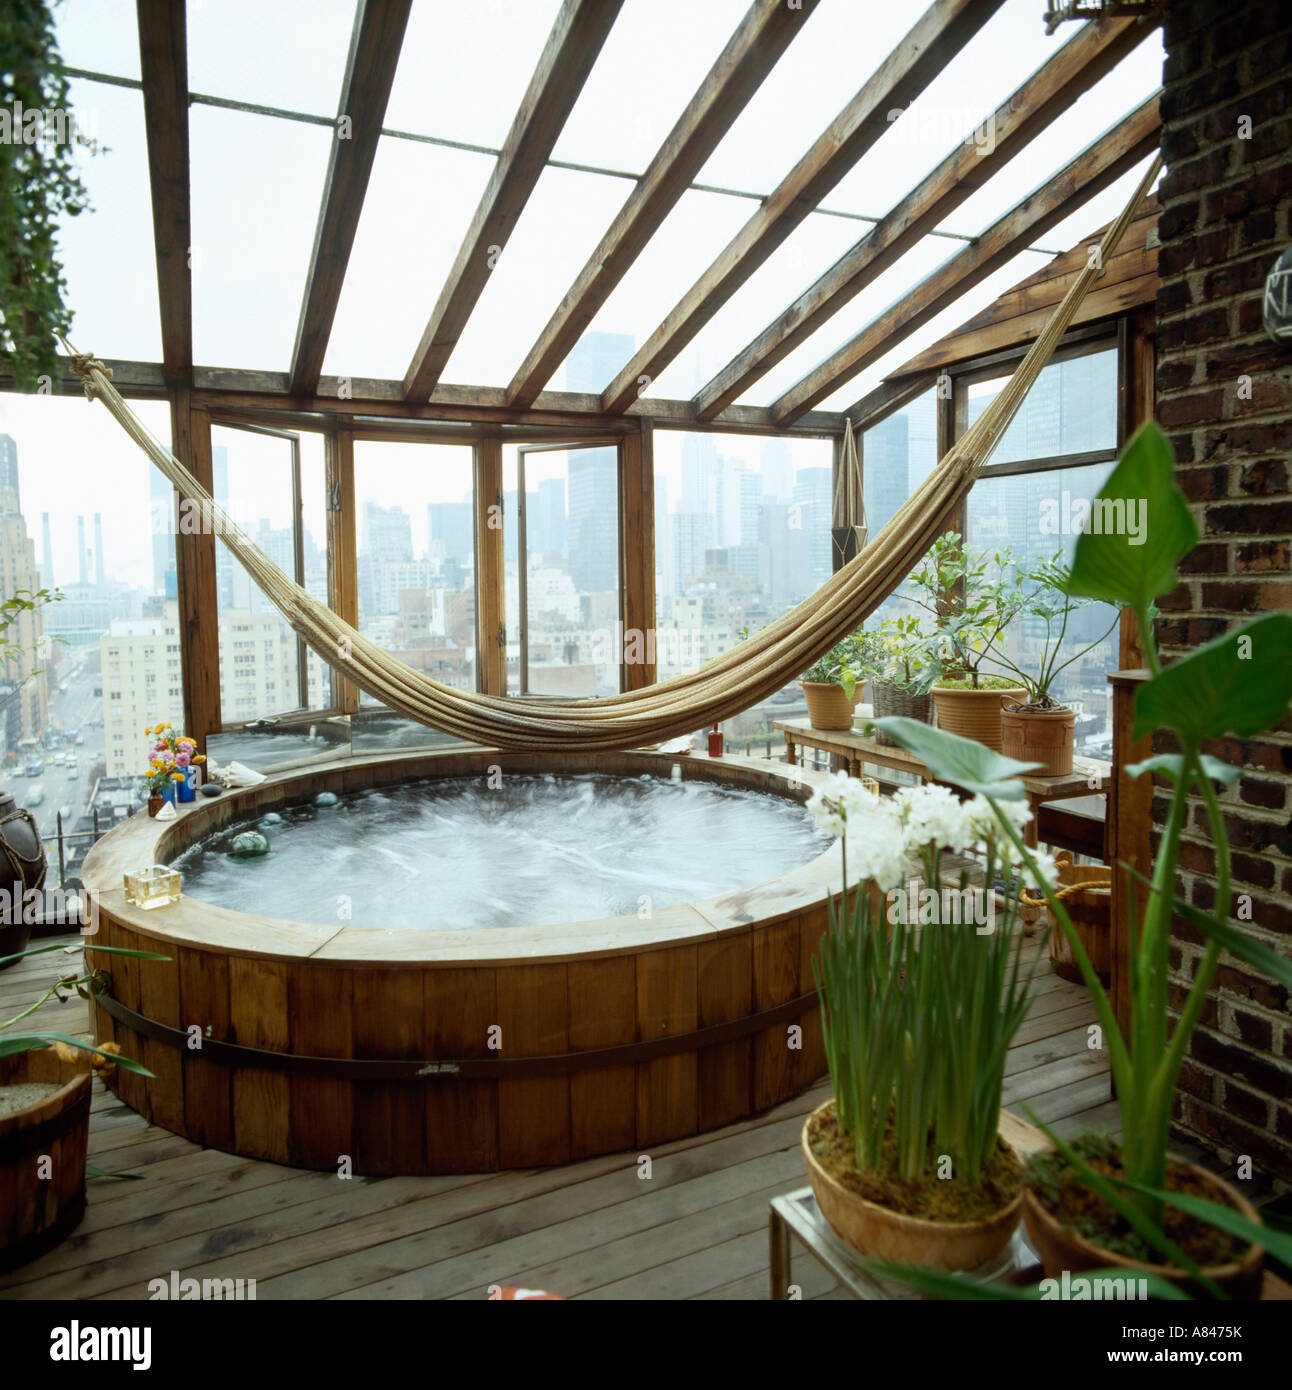 Hot Tub Hammock >> Hammock Above Hot Tub In Conservatory Bathroom With View Of New York